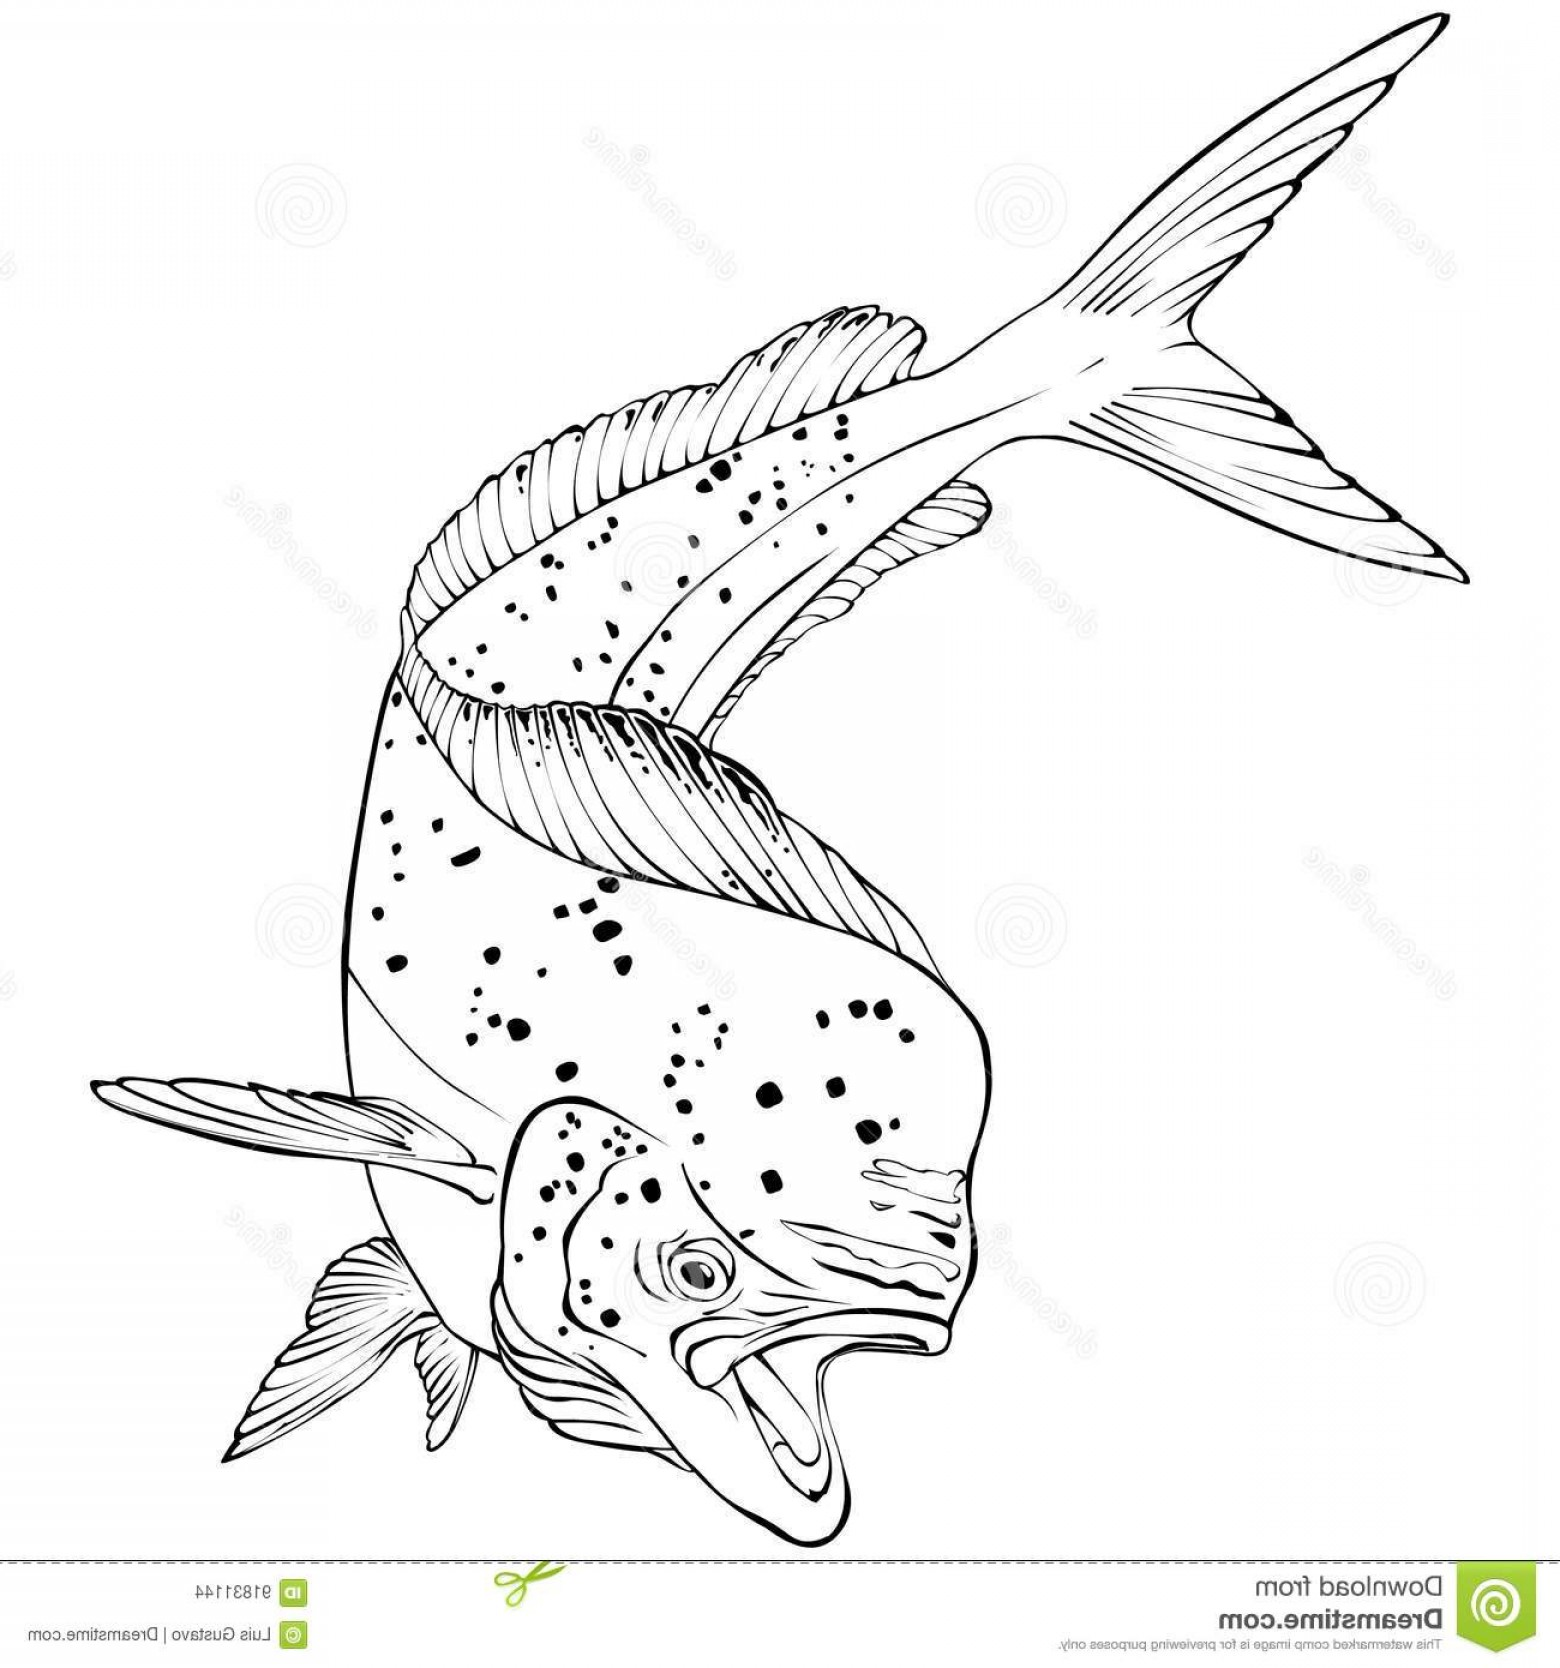 Mahi Mahi Outline Vector Images: Stock Illustration Mahi Mahi Fish Vector Illlustration Jumping Illustration Image